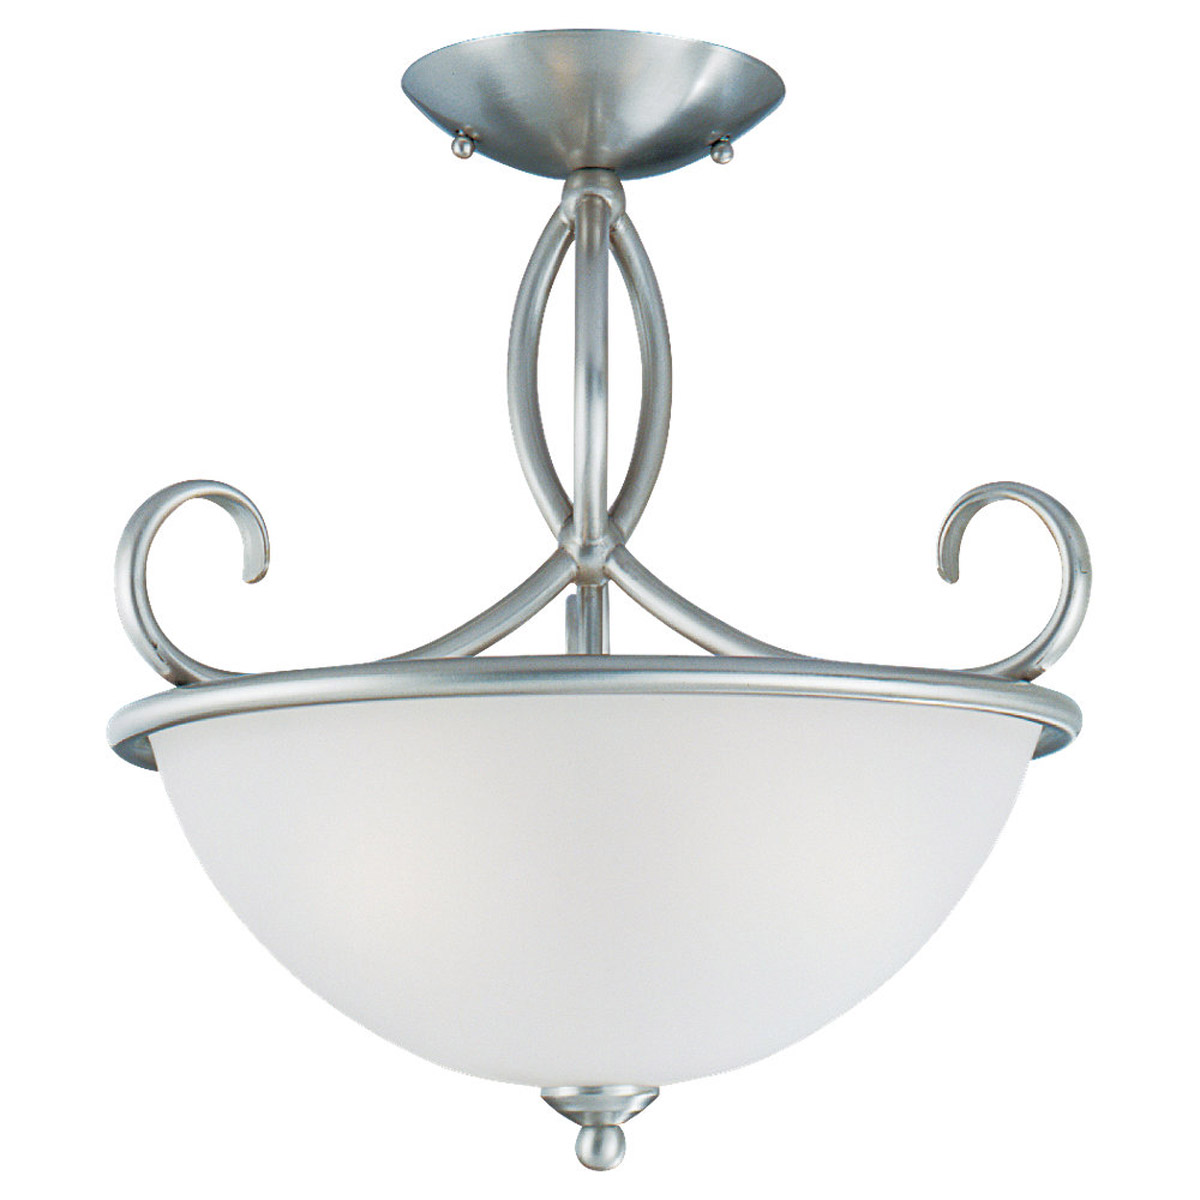 Sea Gull Lighting Pemberton 3 Light Semi-Flush Mount in Brushed Nickel 75075-962